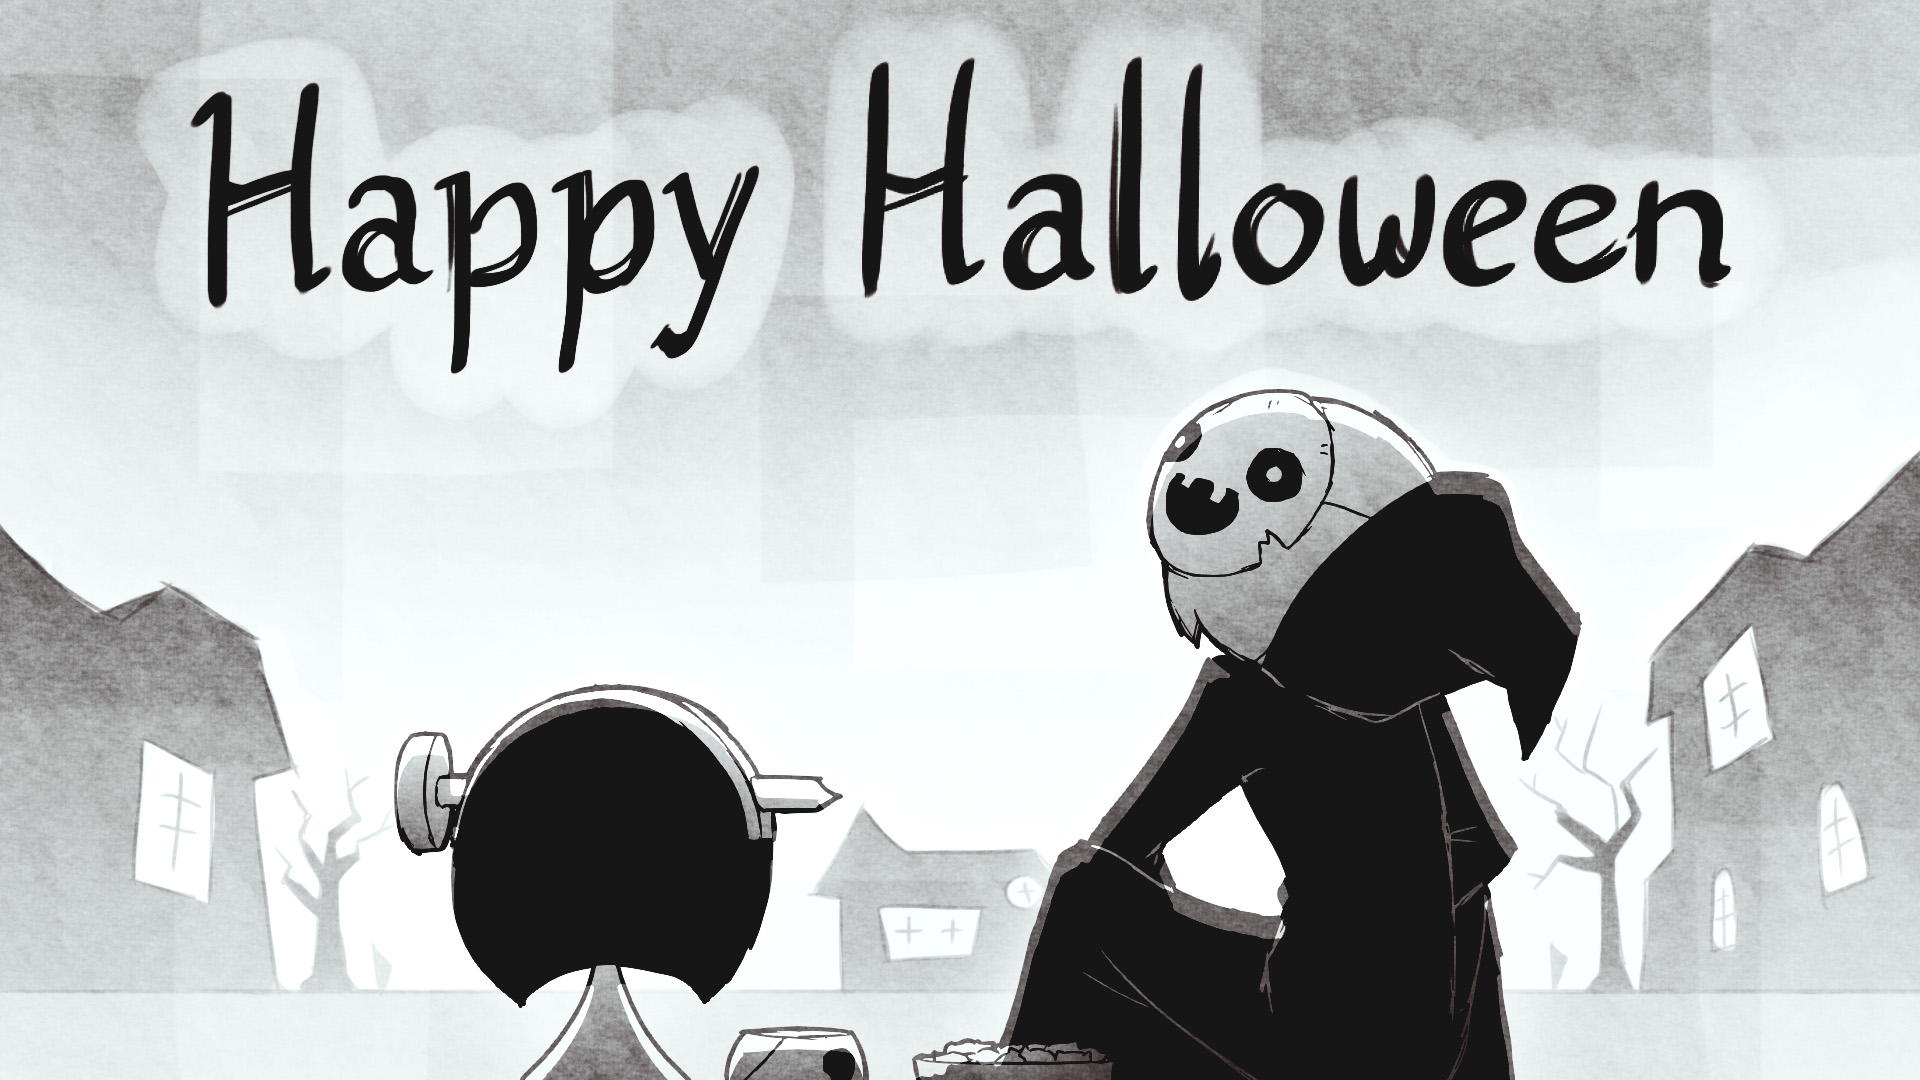 Happy Halloween by Mikeinel on DeviantArt